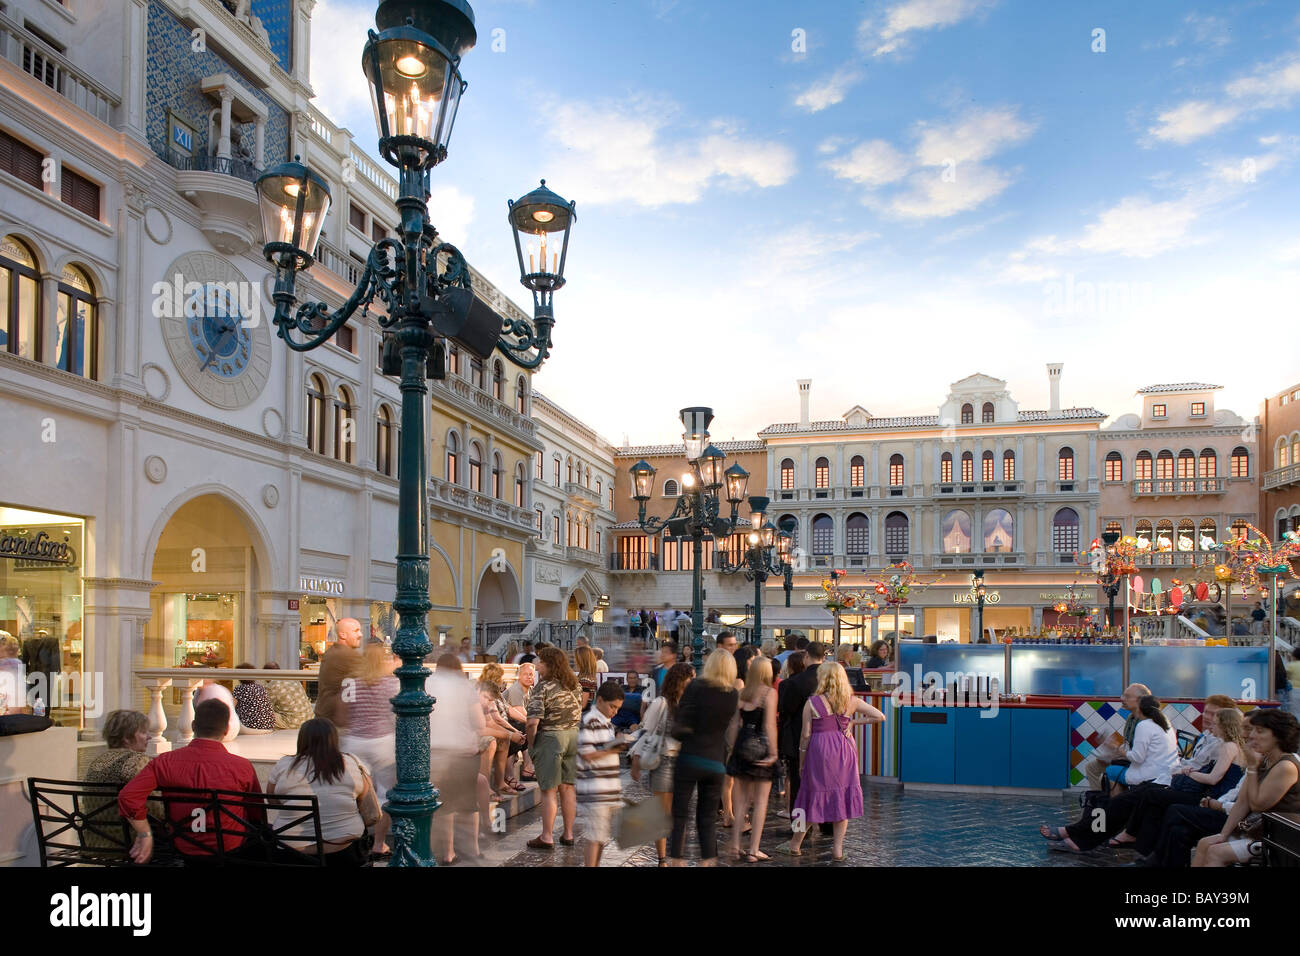 St Mark's square at the Venetian Hotel in Las Vegas, Nevada, USA - Stock Image